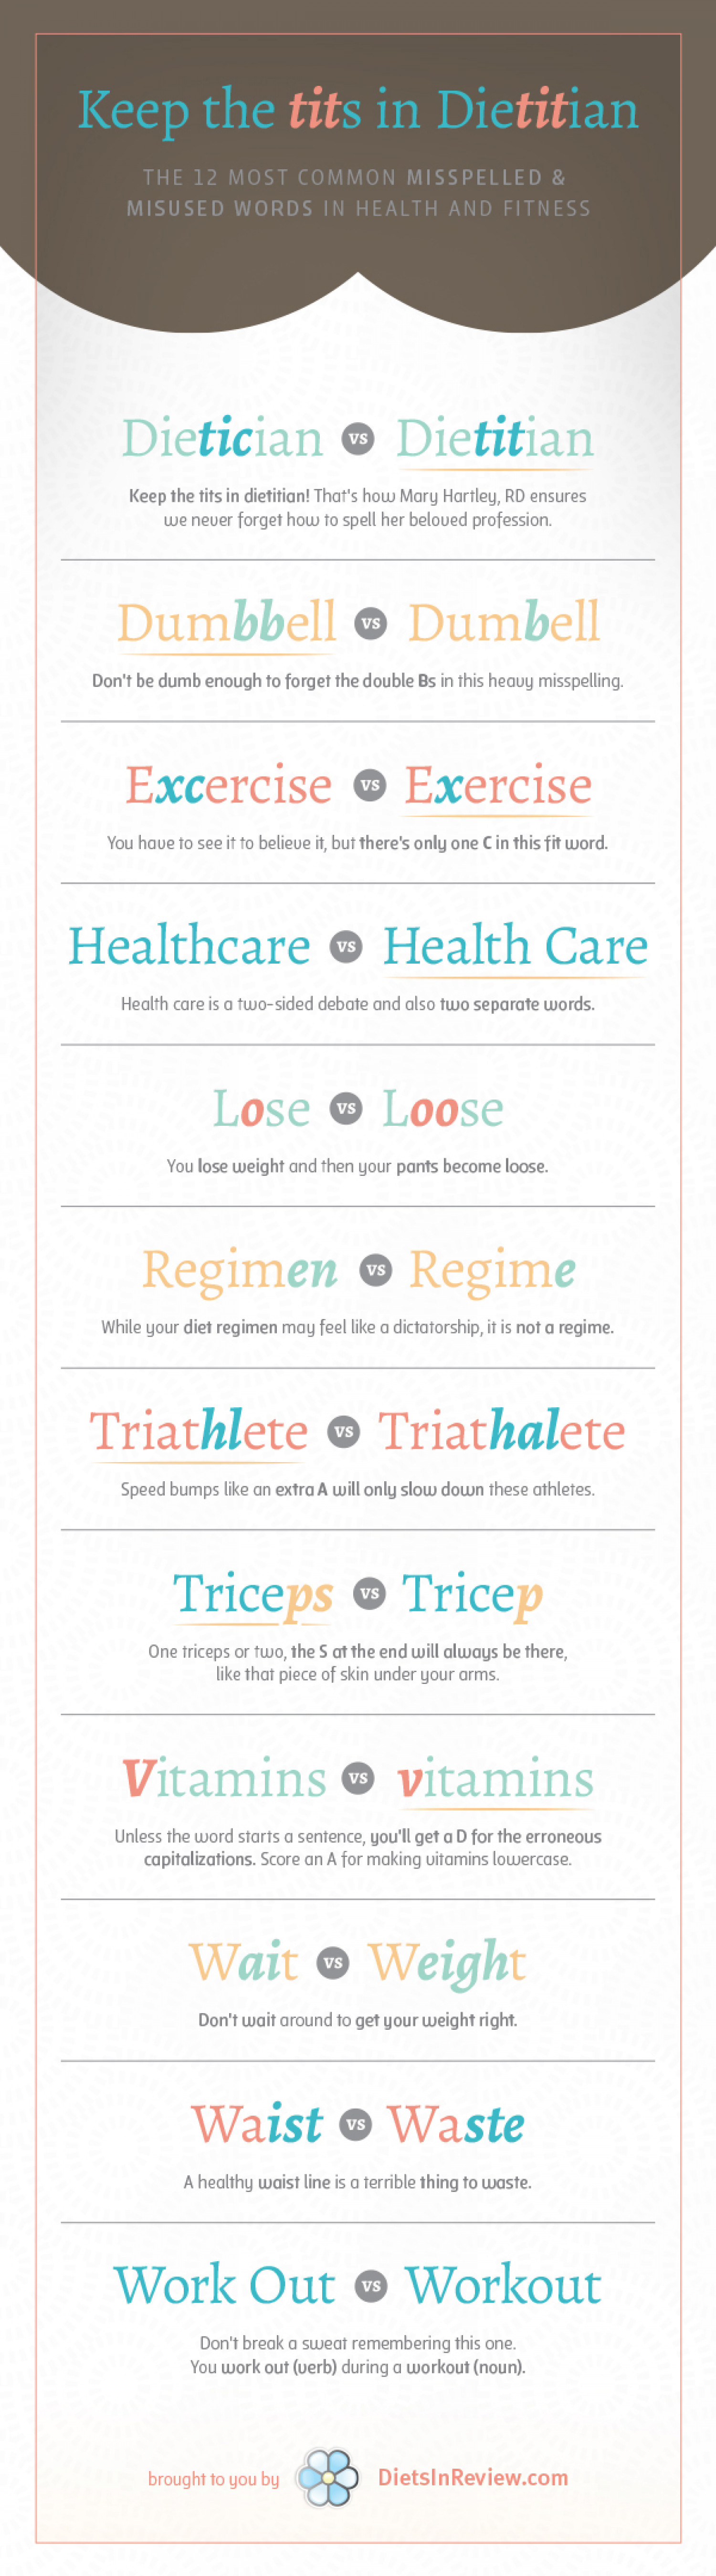 Keep the Tits in Dietitian: The 12 Most Commonly Misspelled Words in Health Care, Diet, and Fitness Infographic